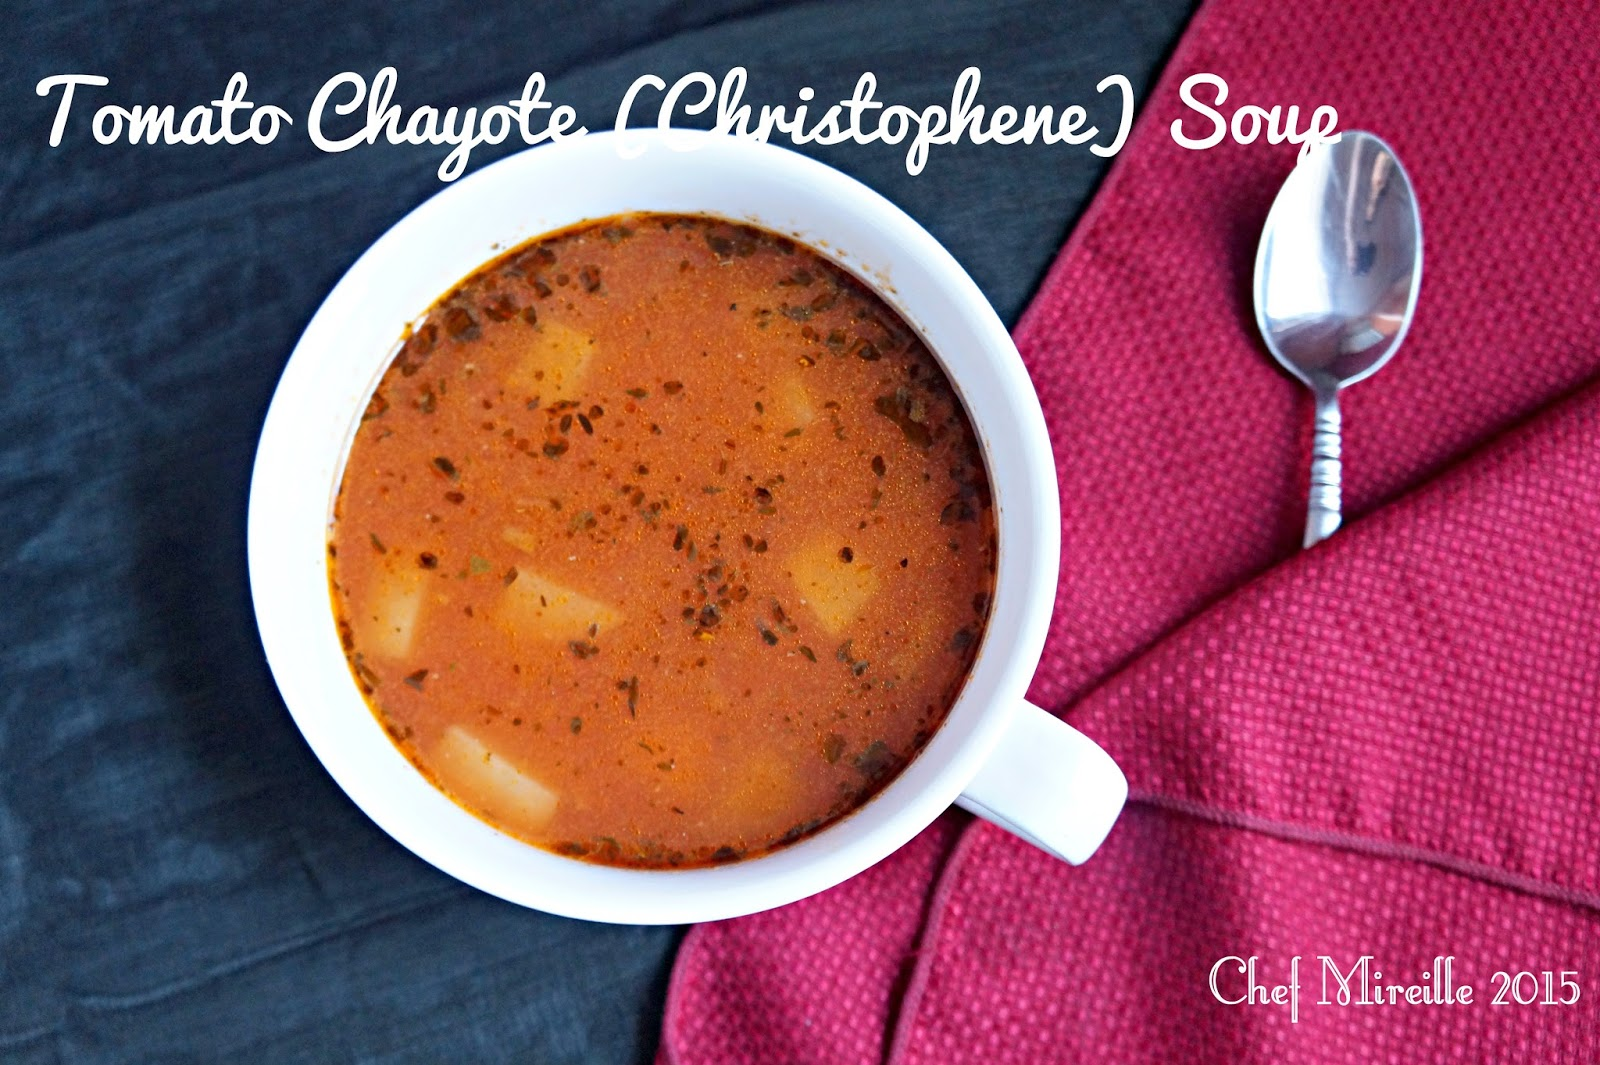 Tomato Chayote Soup, Chicken Chayote Soup